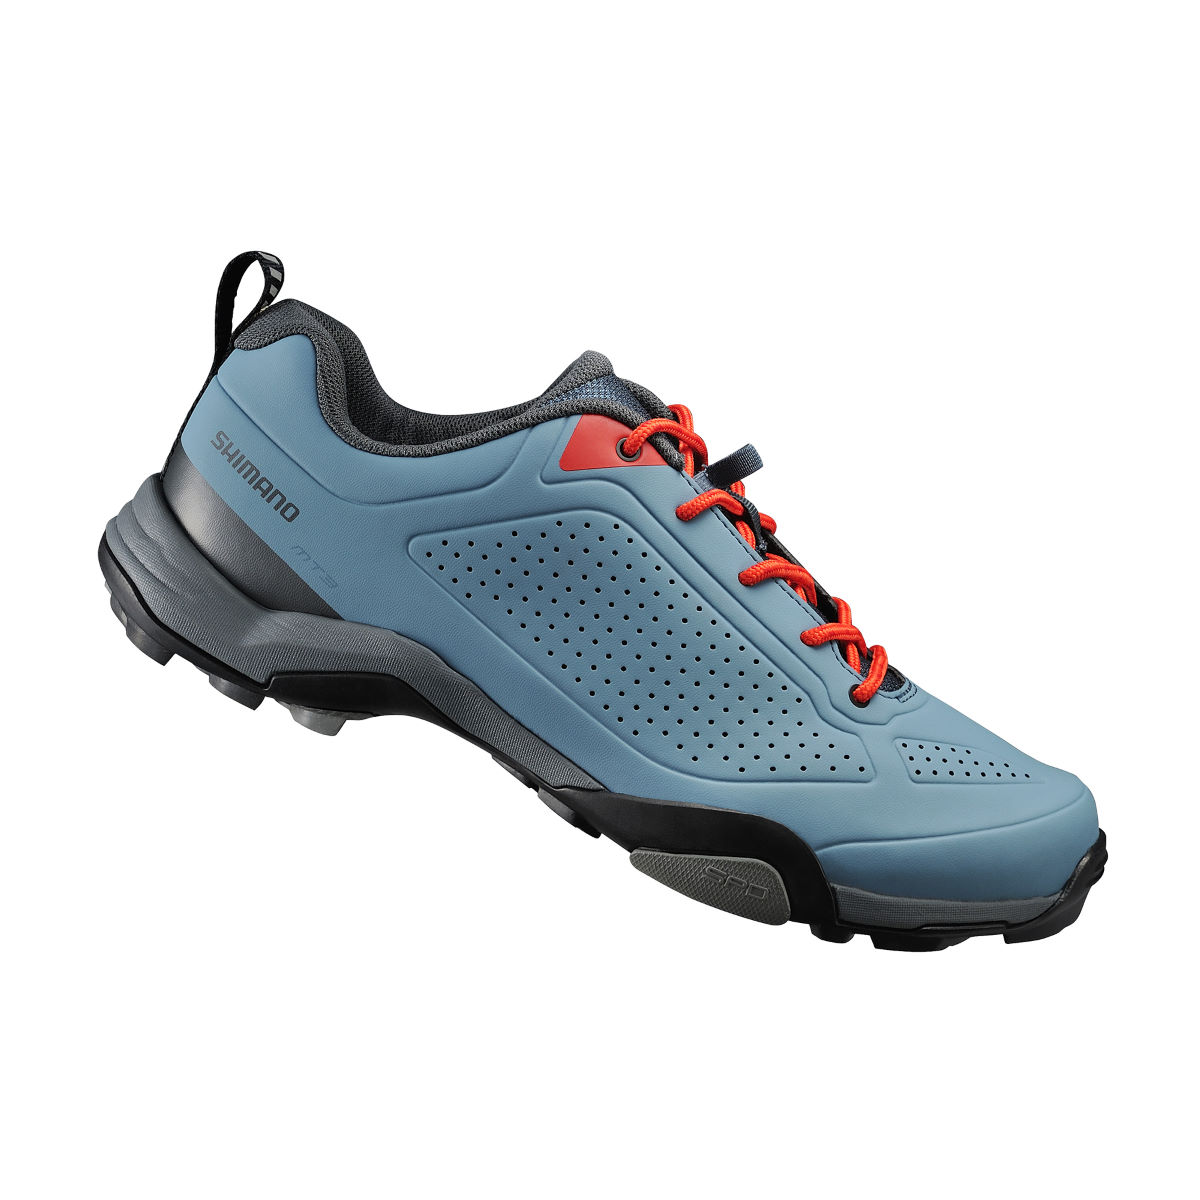 Shimano MT3 SPD Touring Shoes - 45 Blue | Touring Shoes